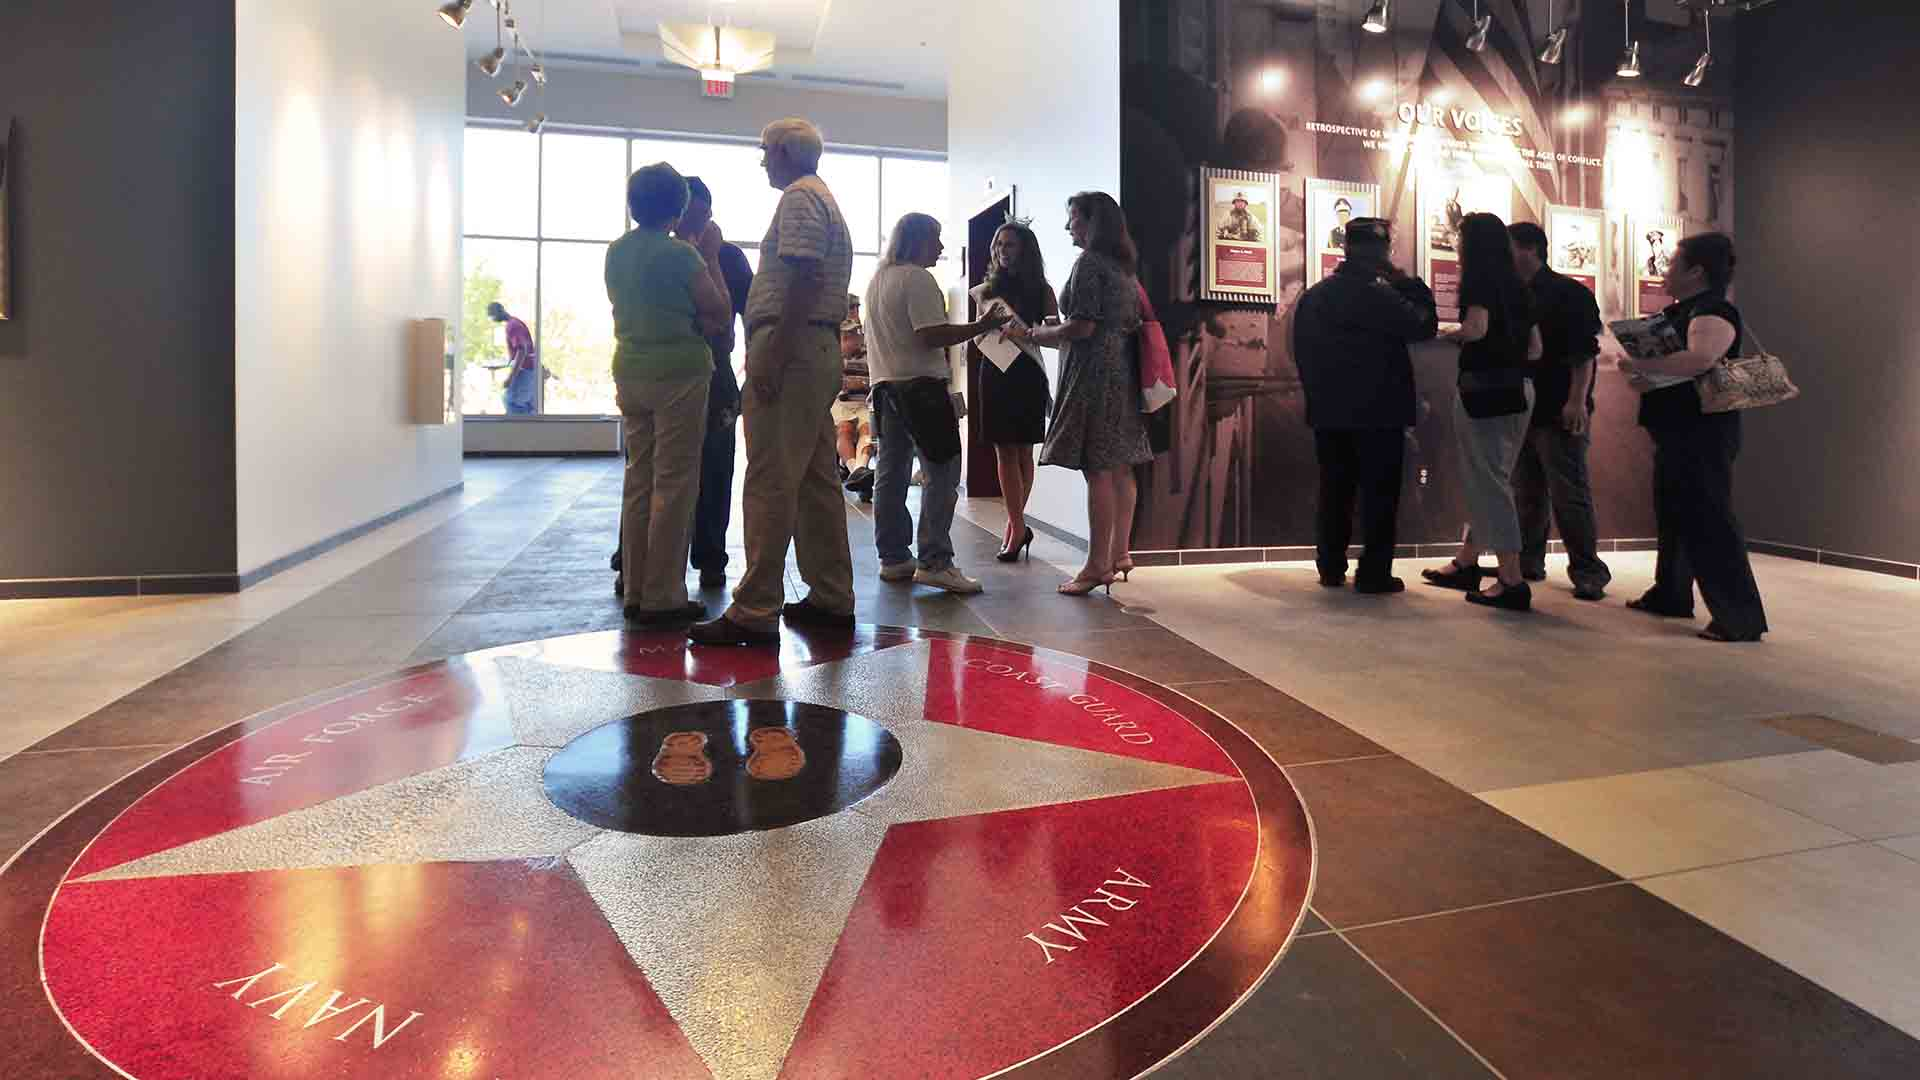 View of museum exhibit with custom graphic tile on floor and framed photographs of military men on wall.